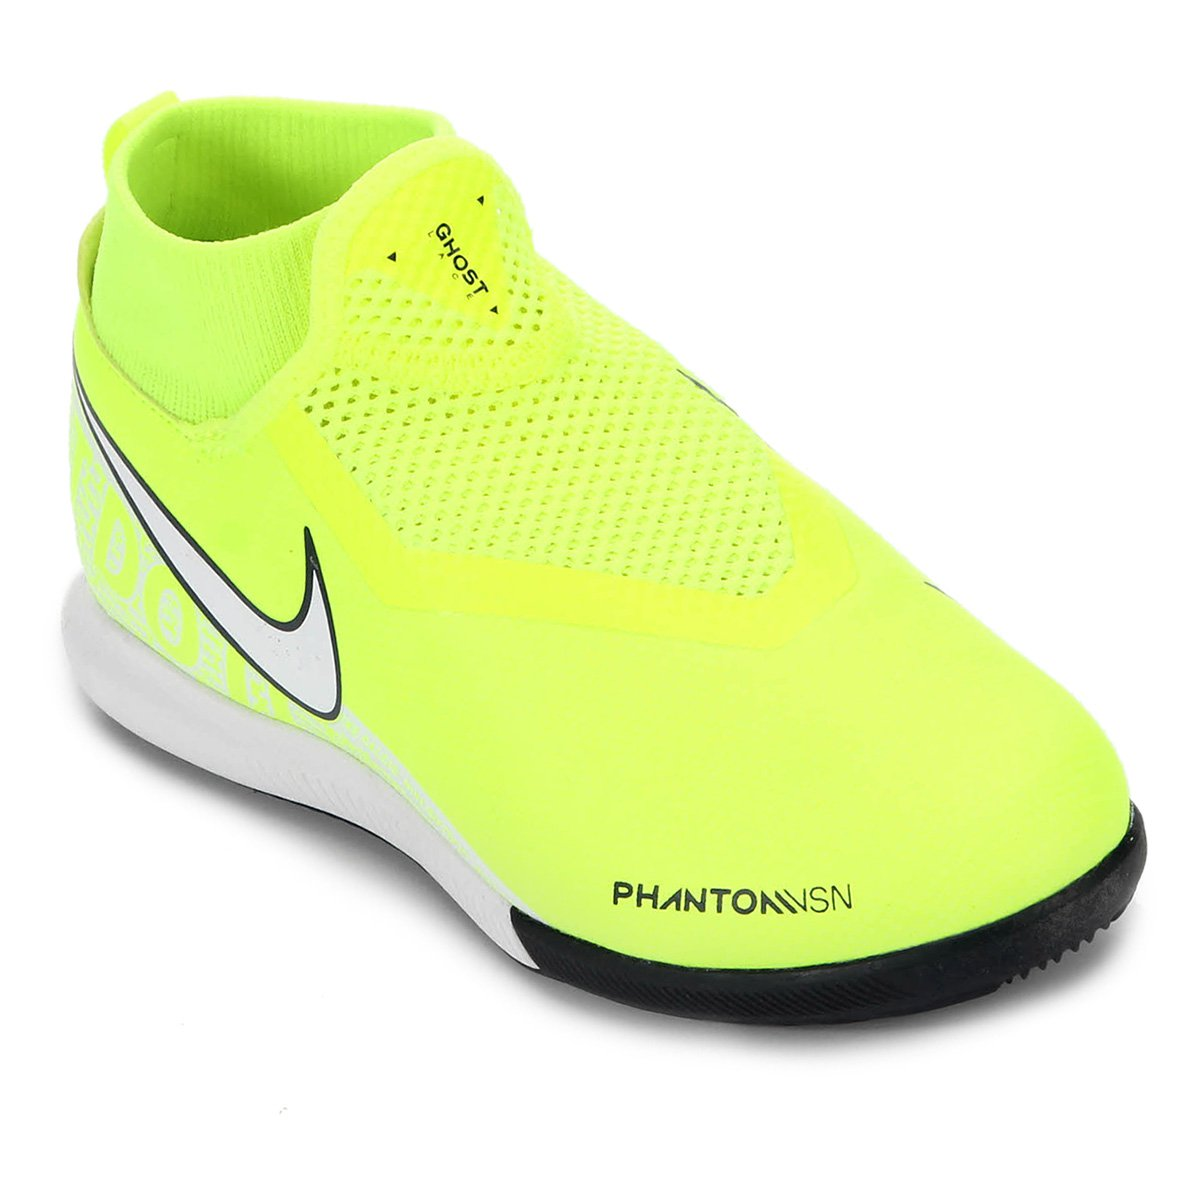 nike ghost futsal 63% di sconto sglabs.it  4aF59s